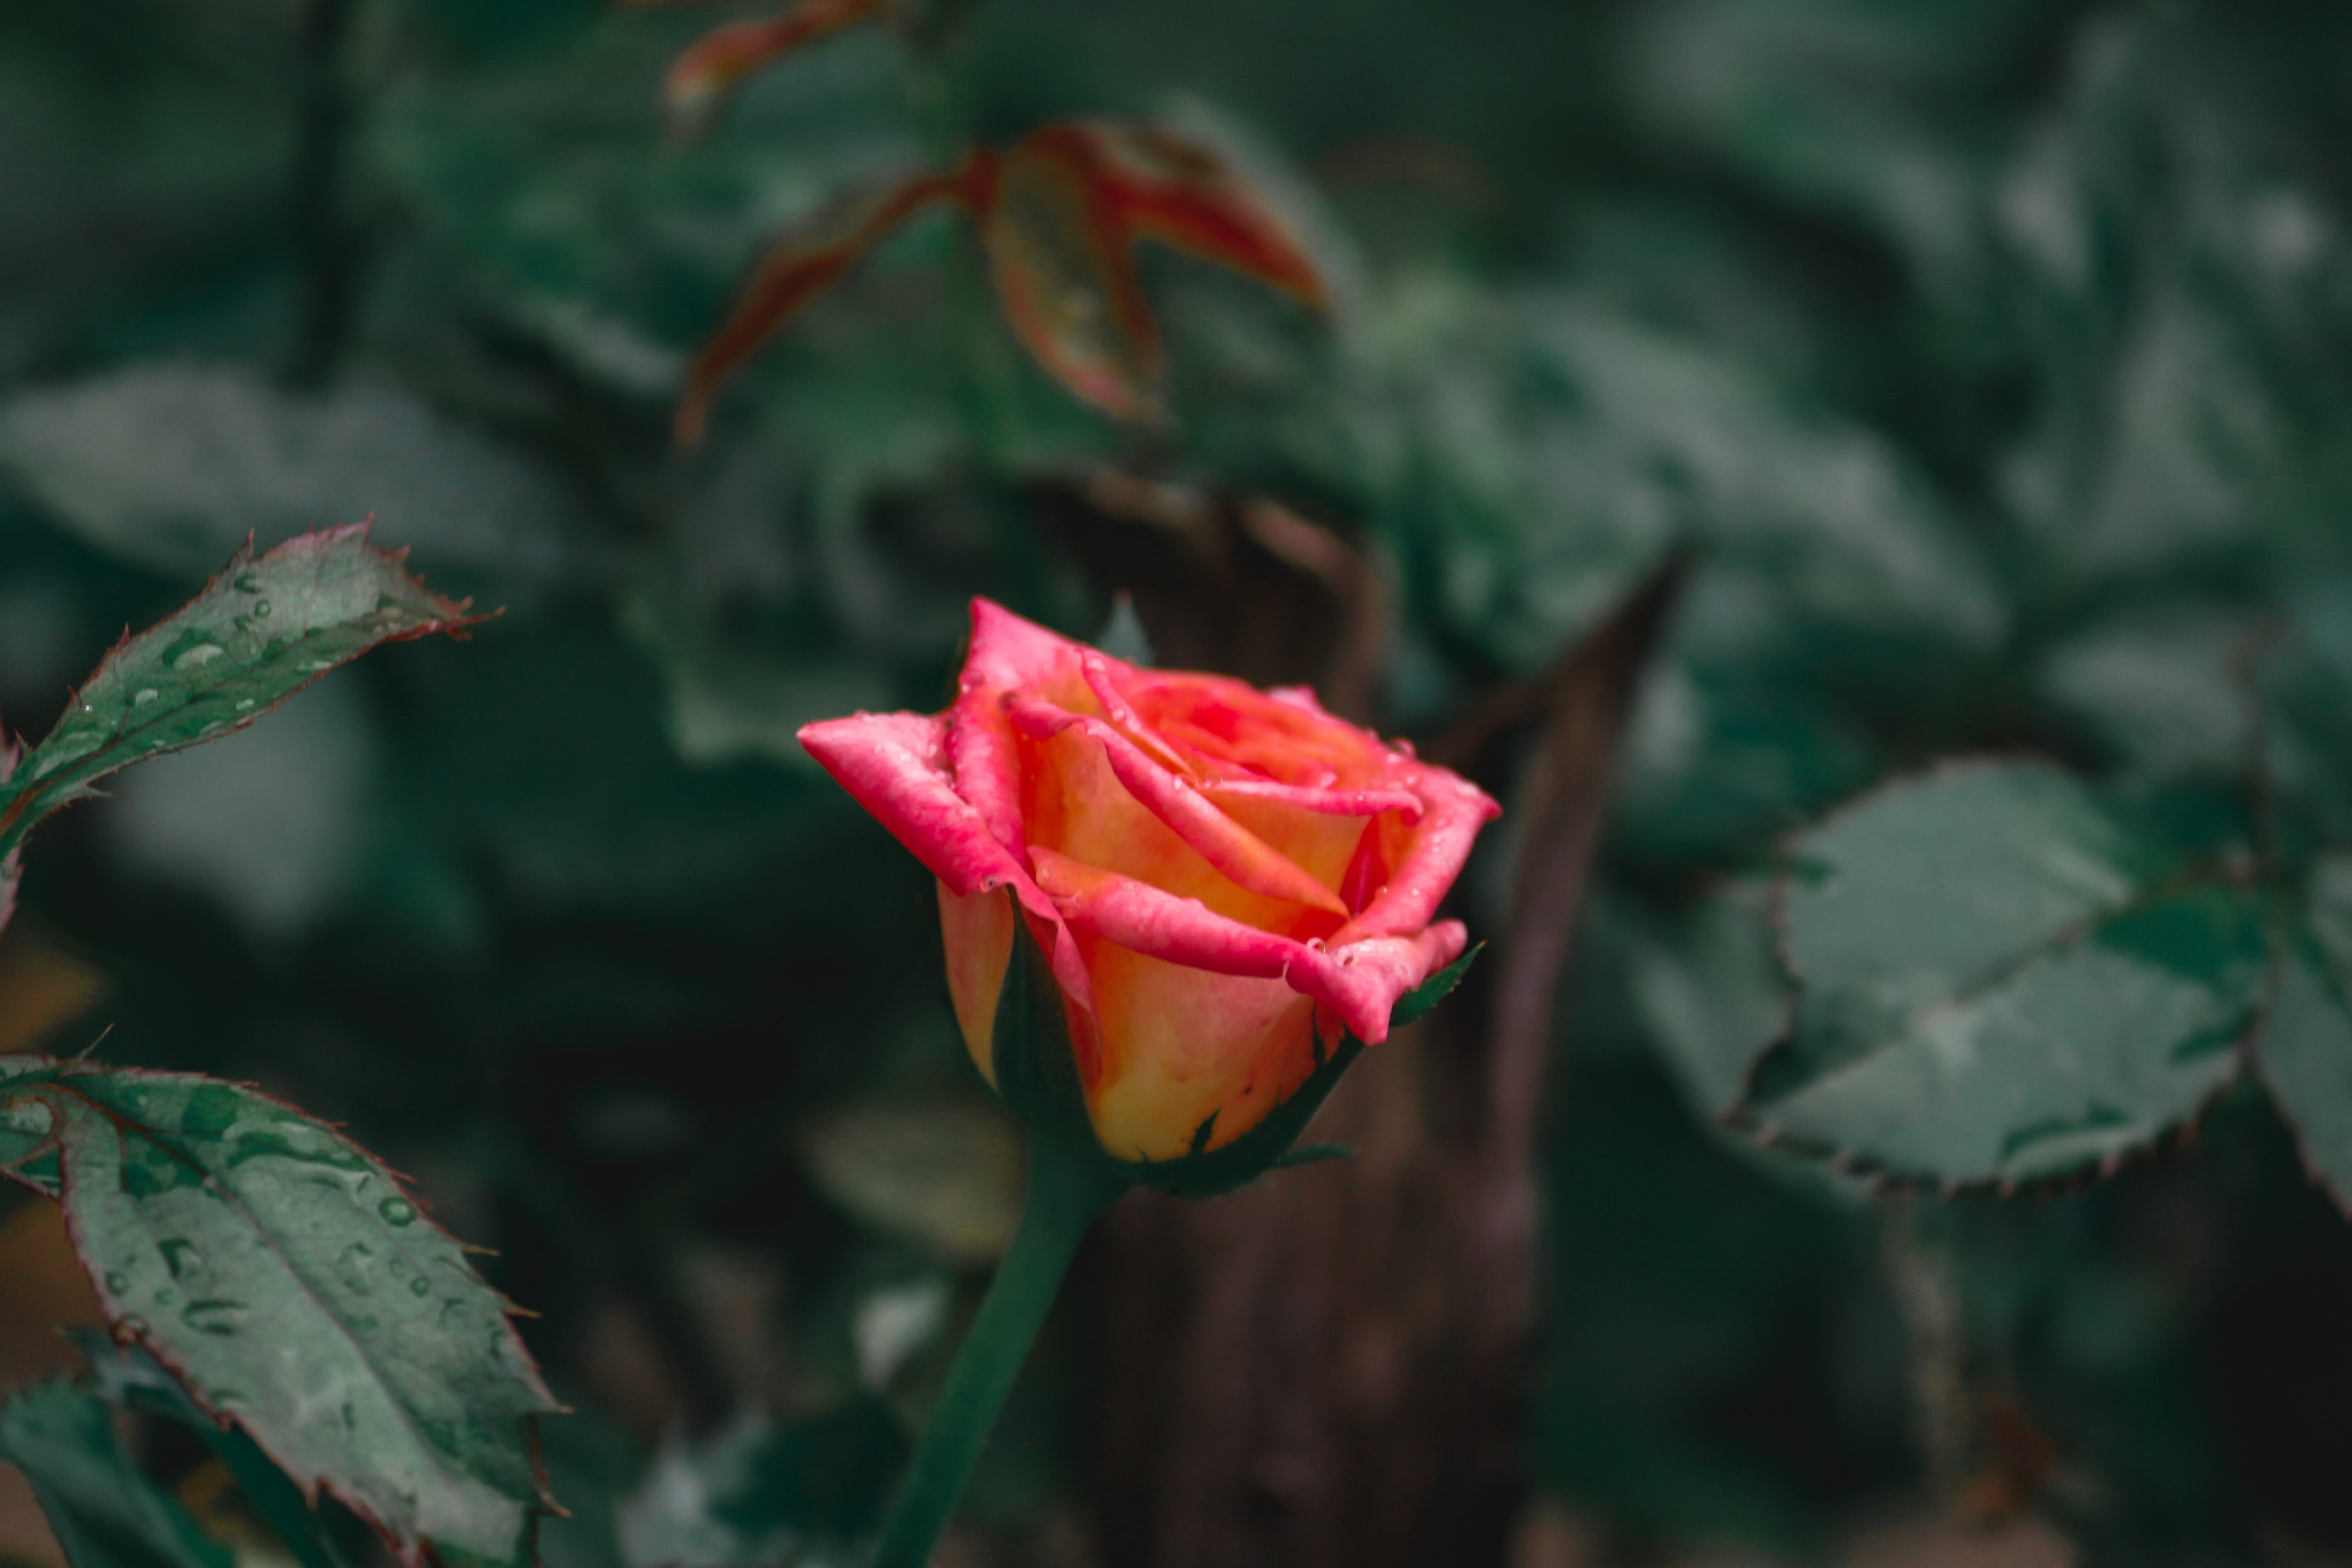 Free stock photo of rose #rose #pink #love #hdwallpapers